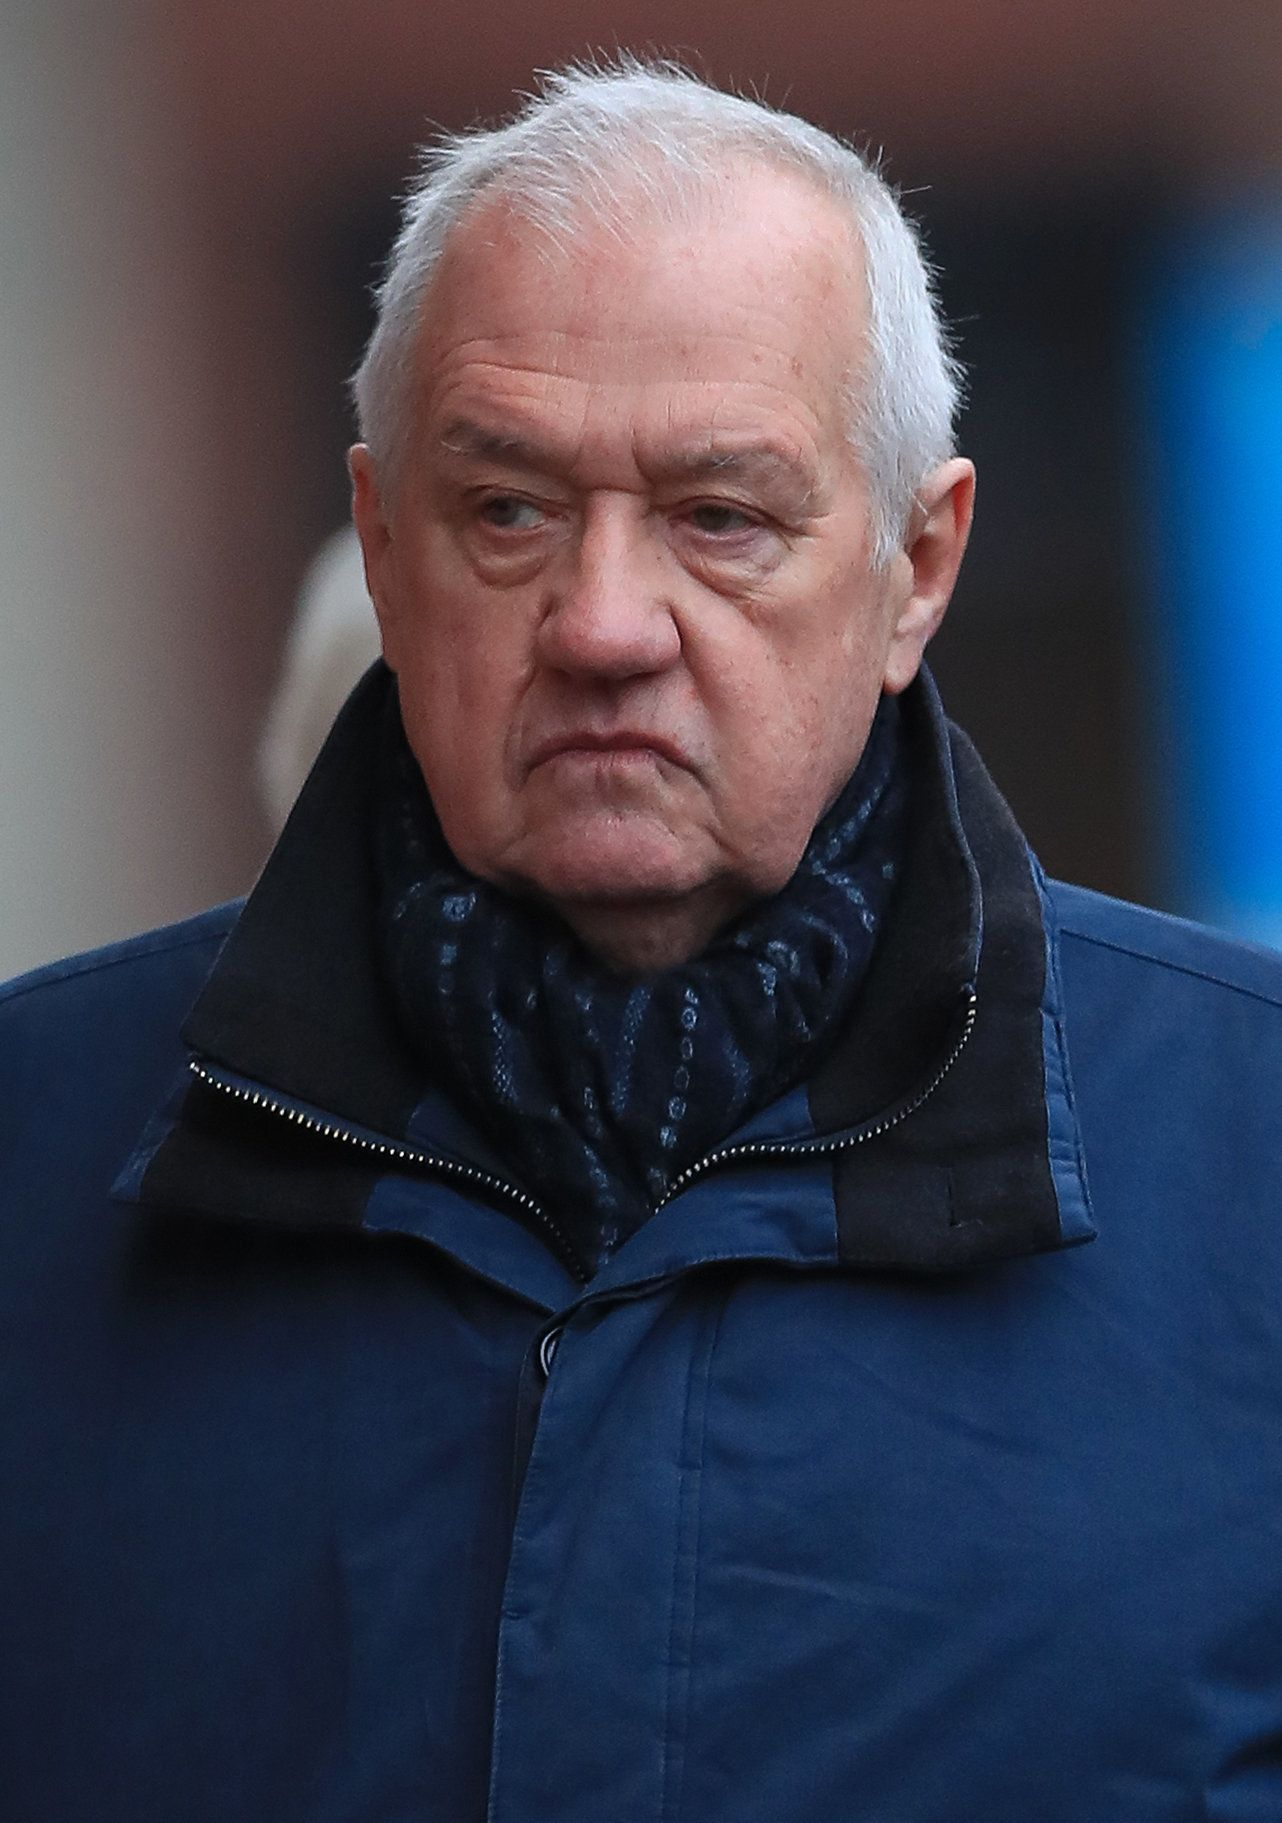 Hillsborough Match Commander David Duckenfield 'Failed Fans', Trial